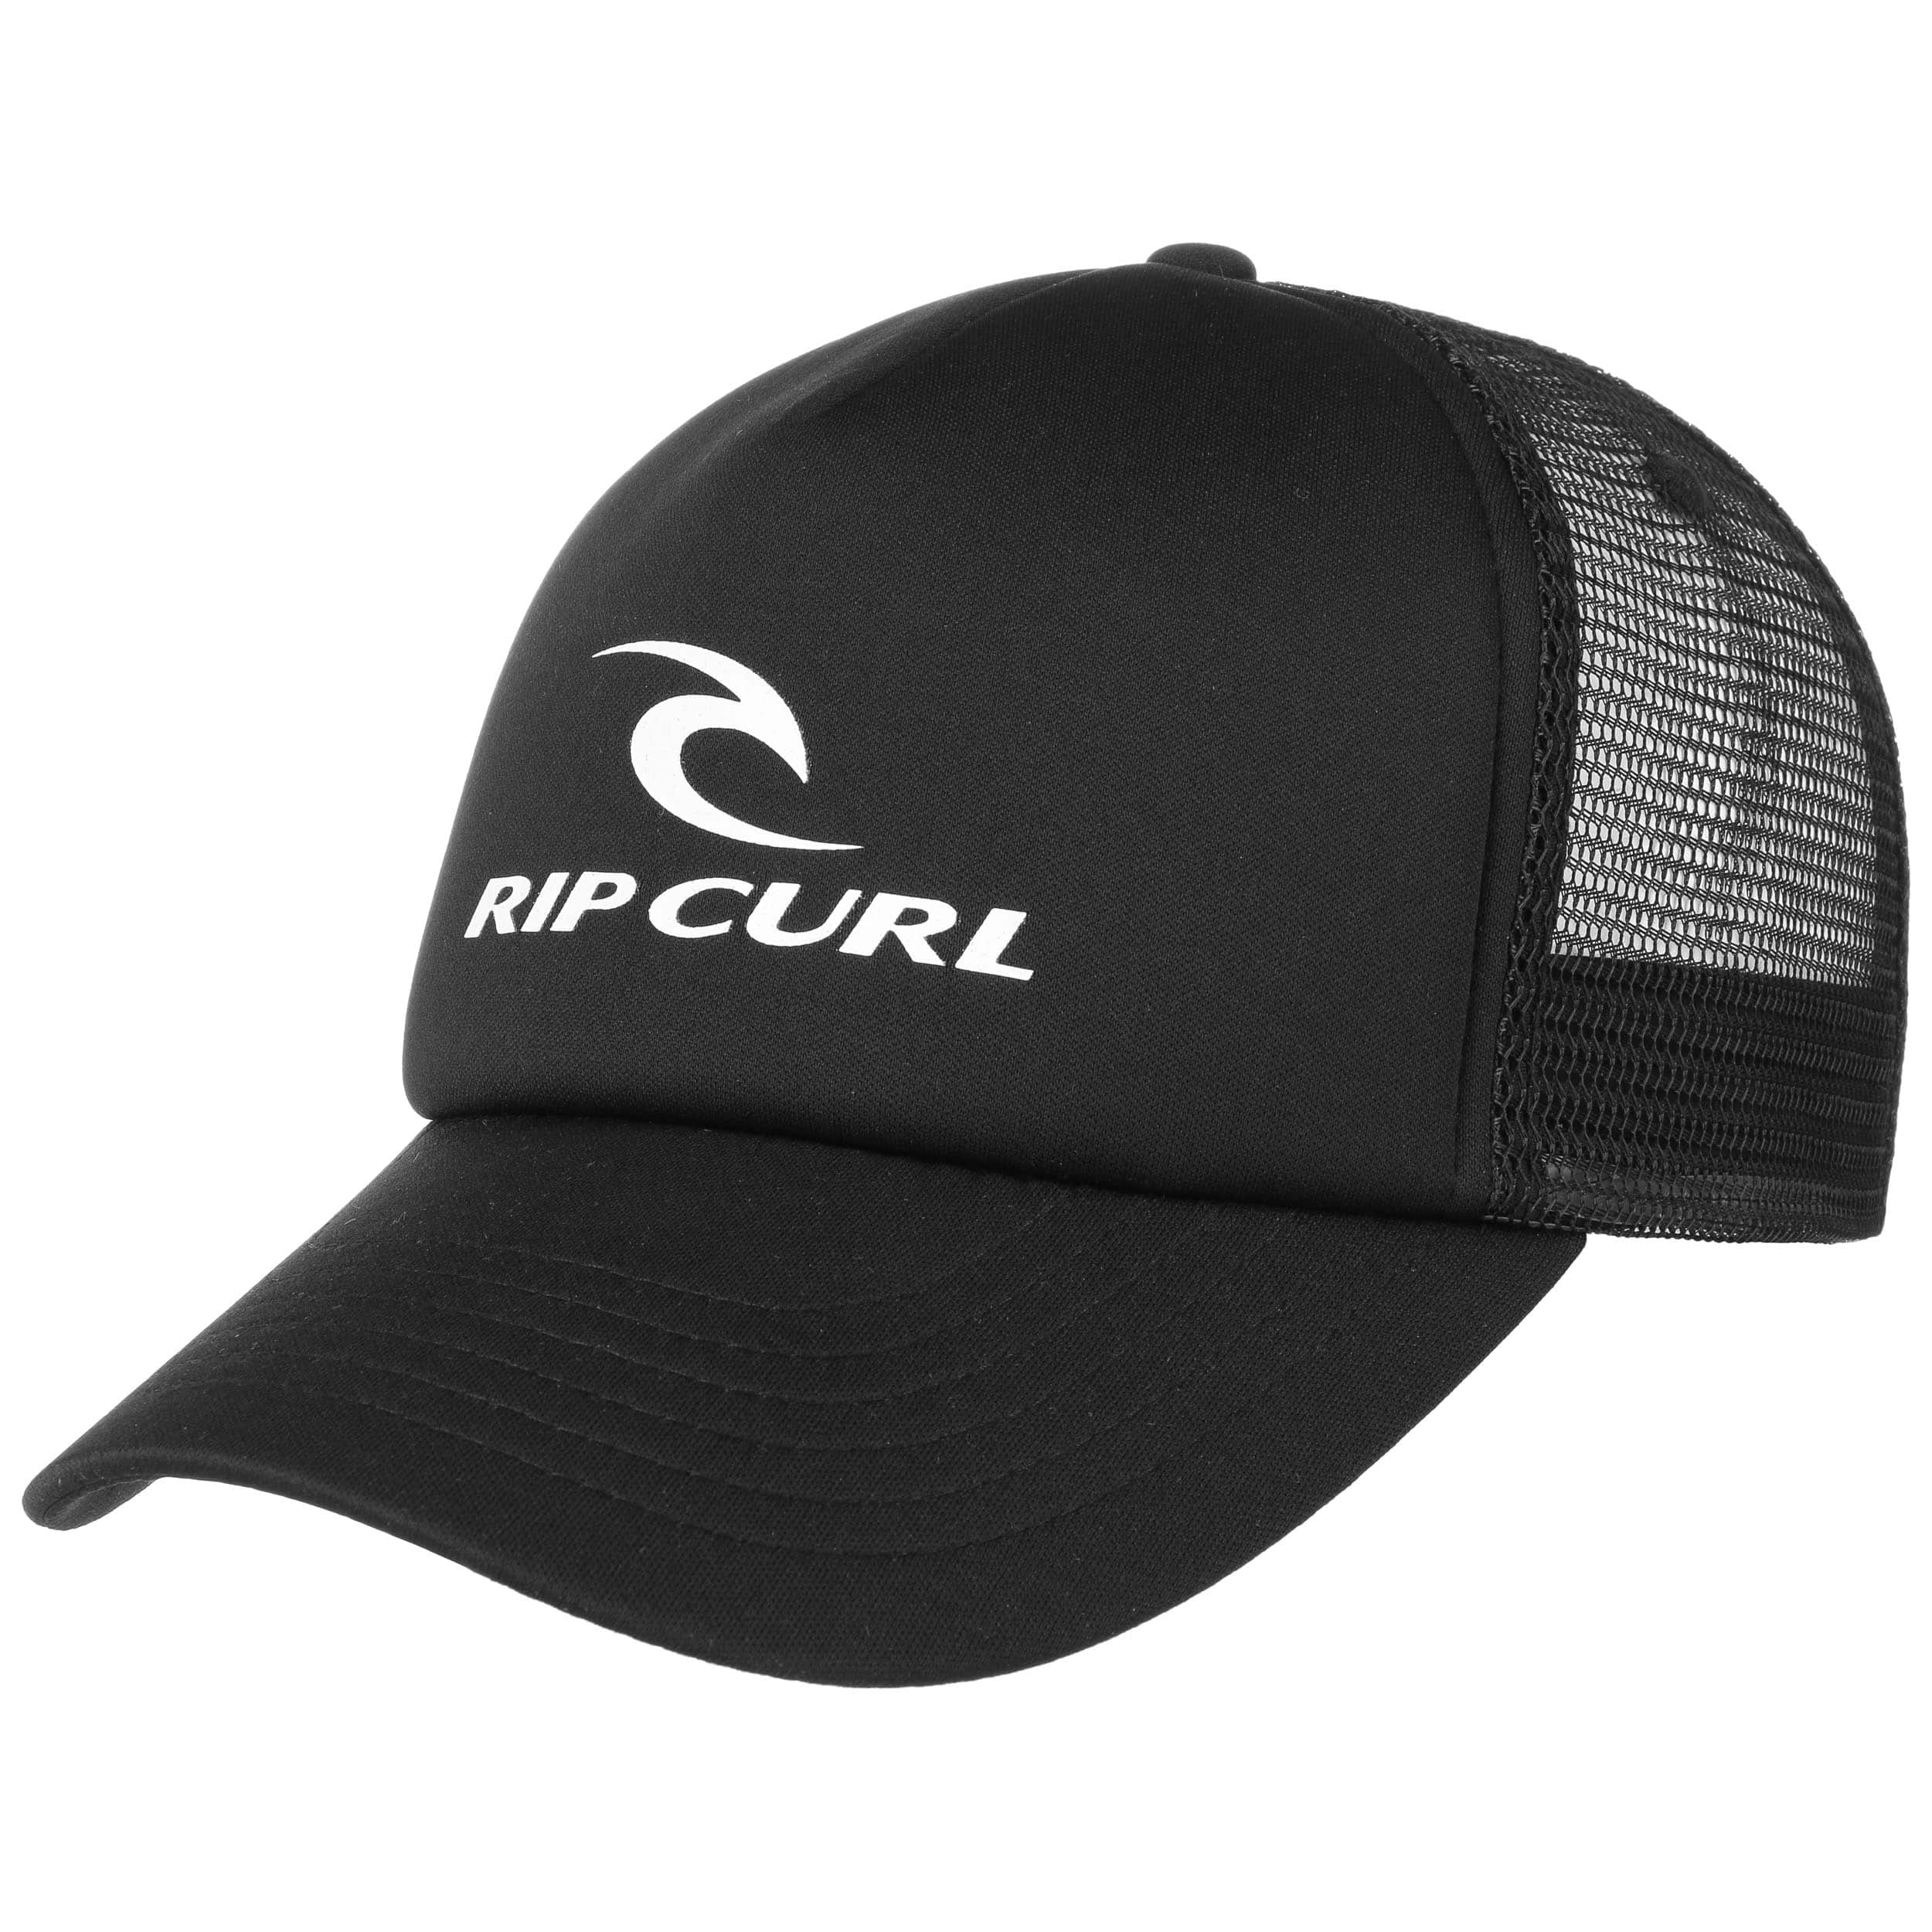 ... Corporate Trucker Cap by Rip Curl - black 5 ... d53bf844c5f7